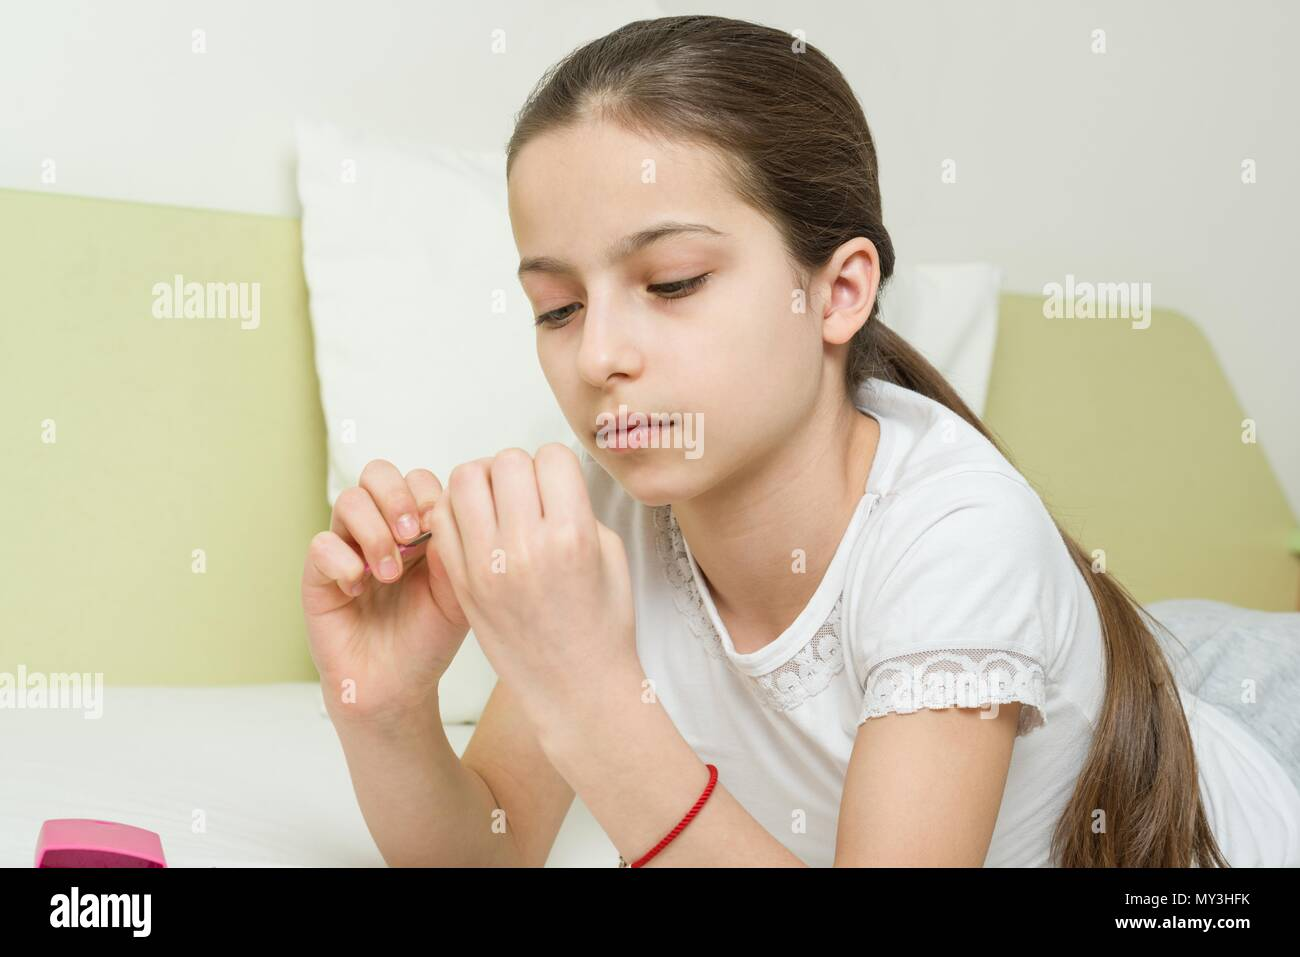 The girl is 10 years old at home on the bed in her home clothes, nails her nails using manicure accessories. - Stock Image